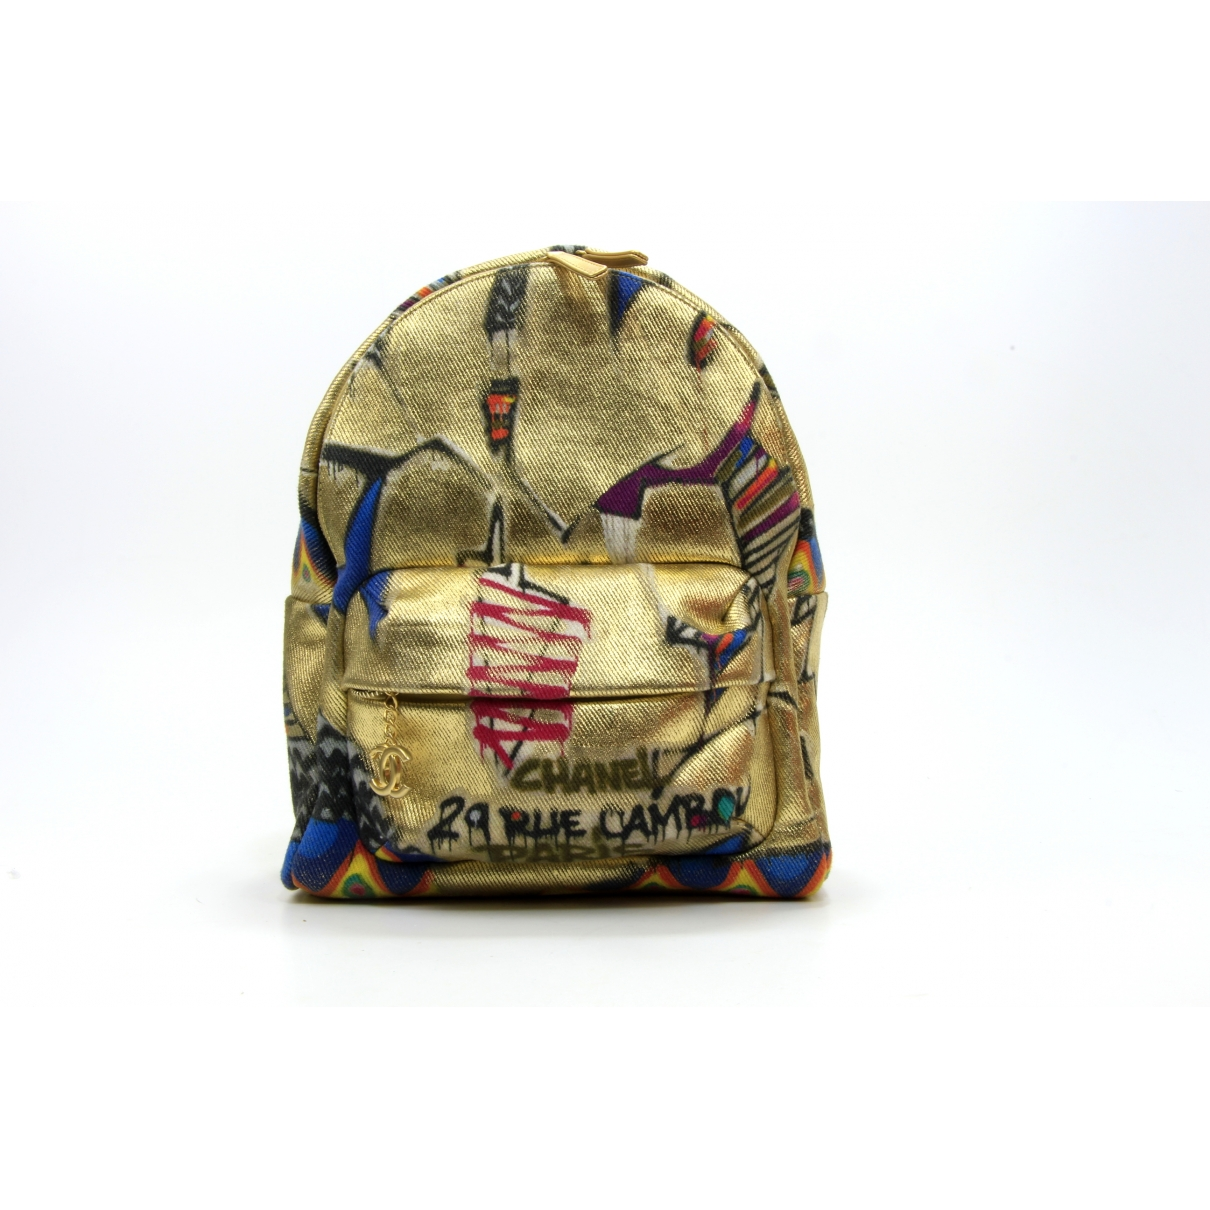 Chanel \N Multicolour Cotton backpack for Women \N